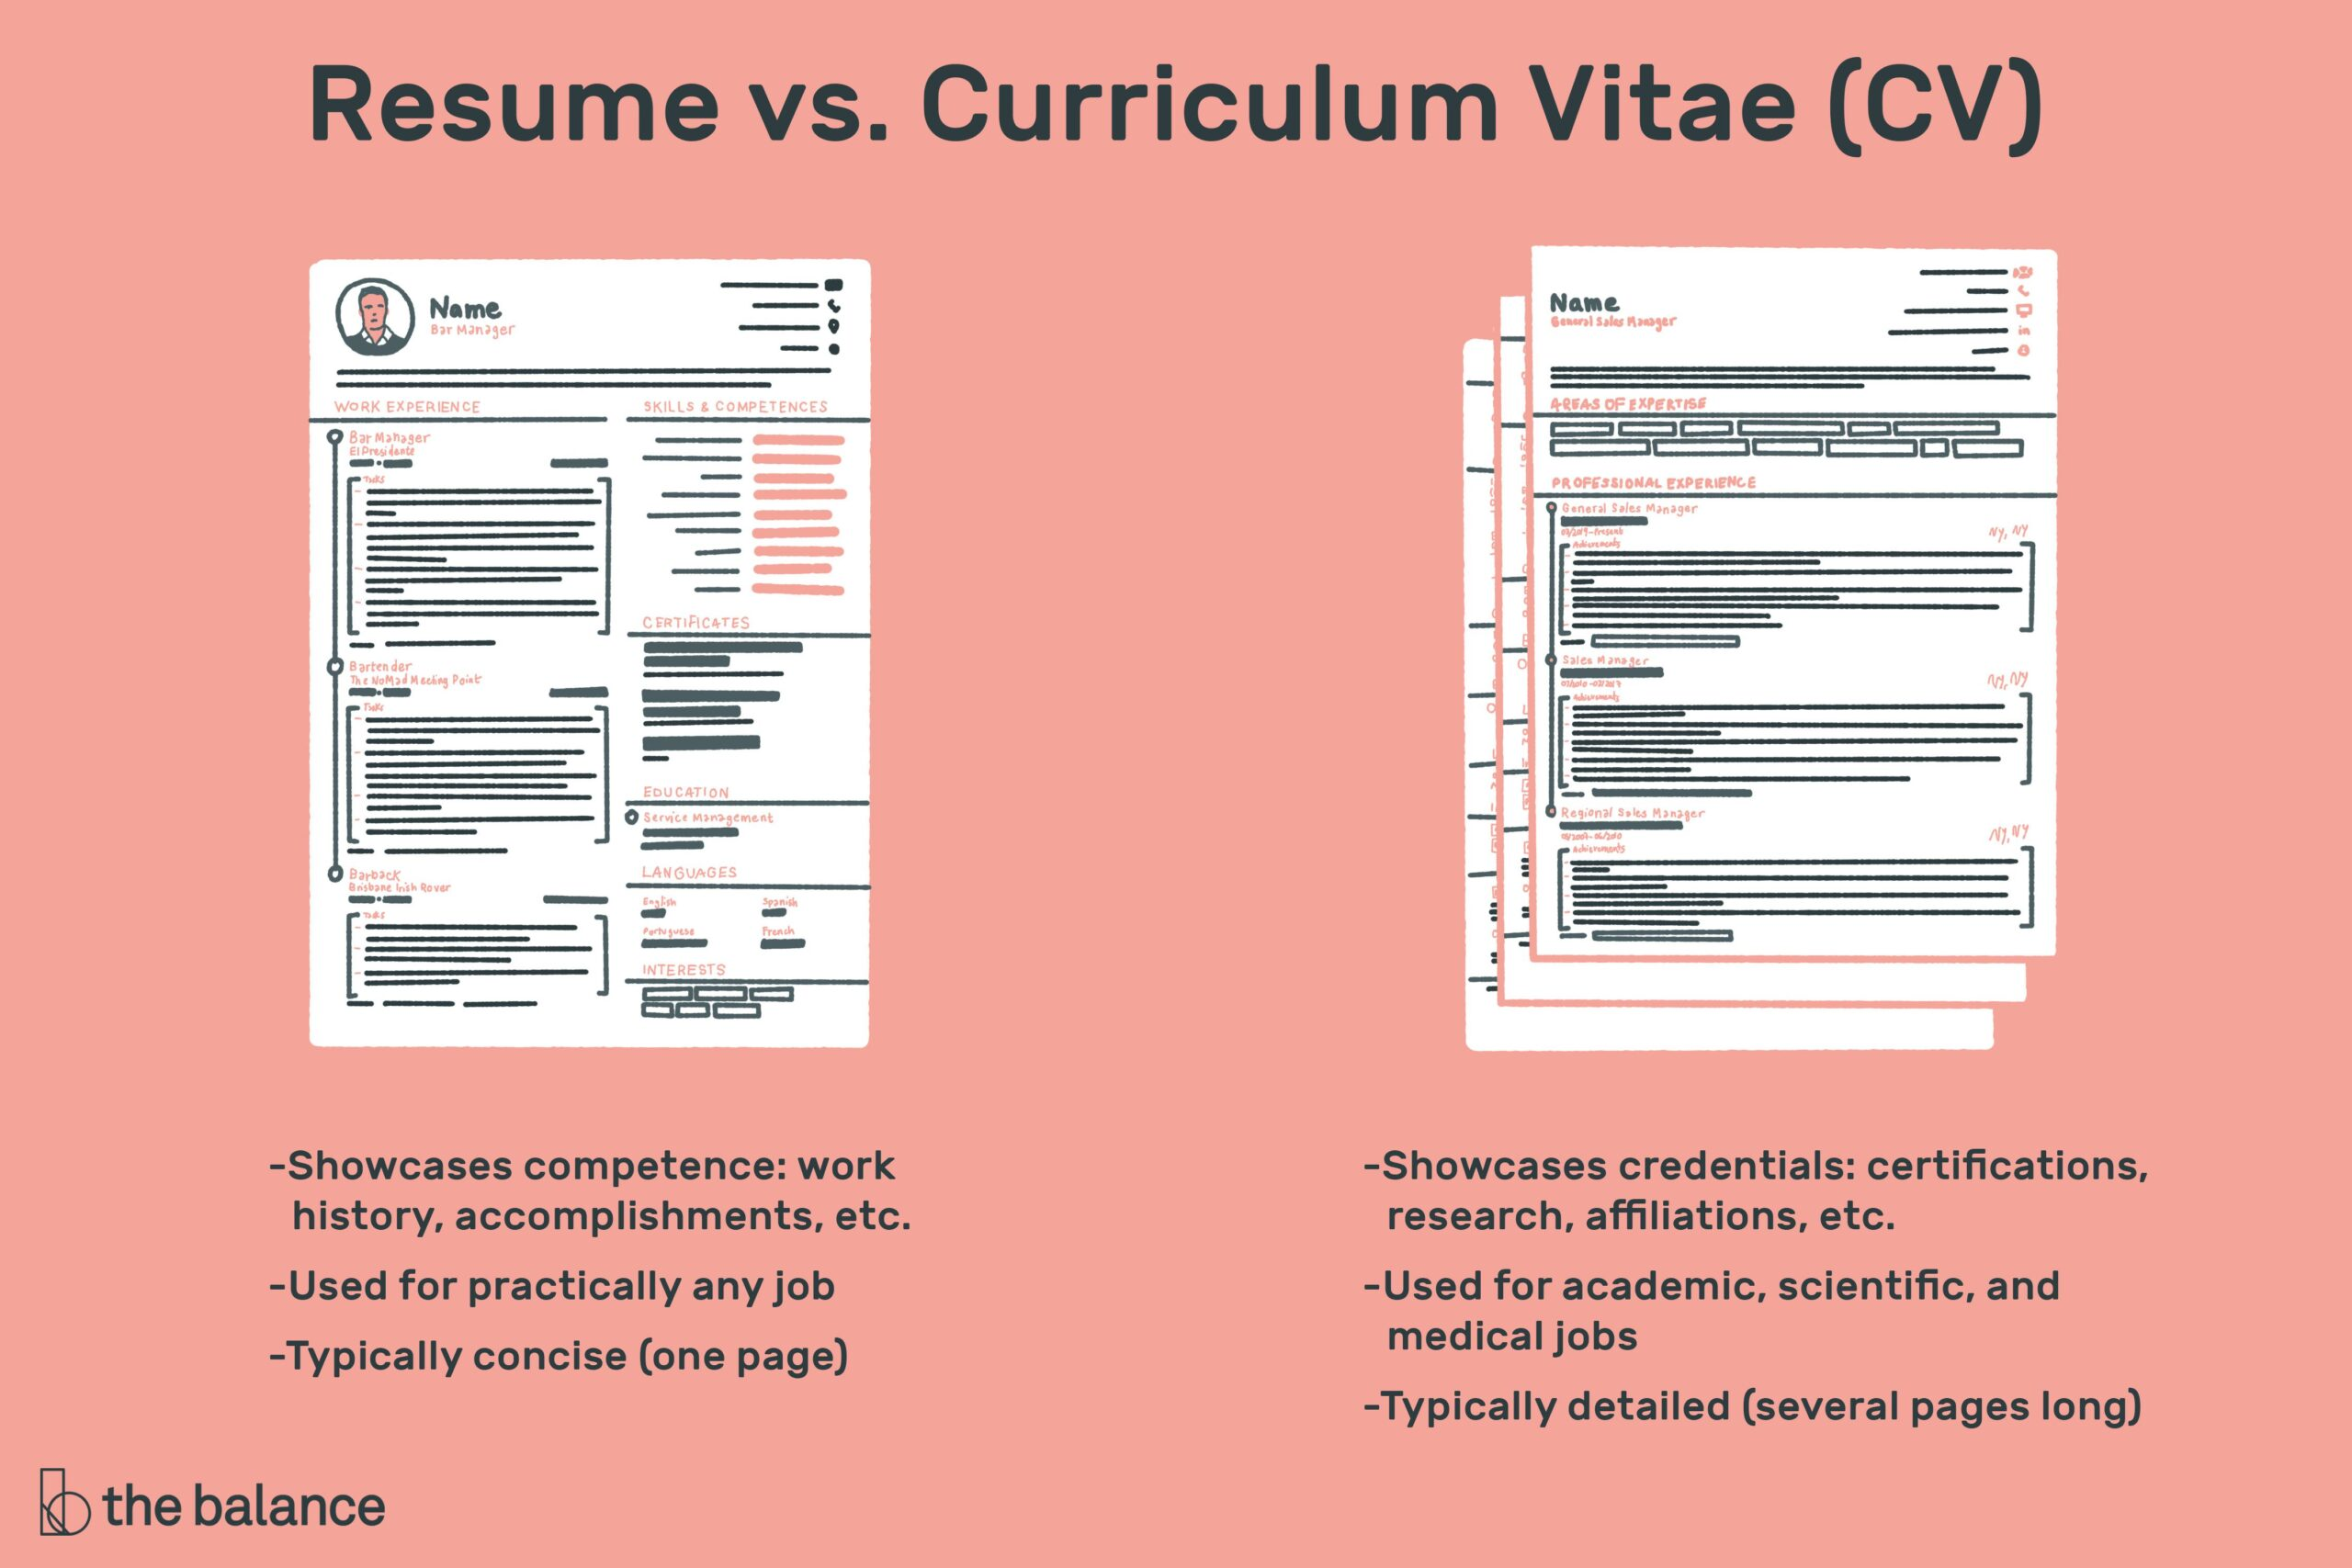 the difference between resume and curriculum vitae one or two cv vs final federal Resume One Or Two Page Resume 2019